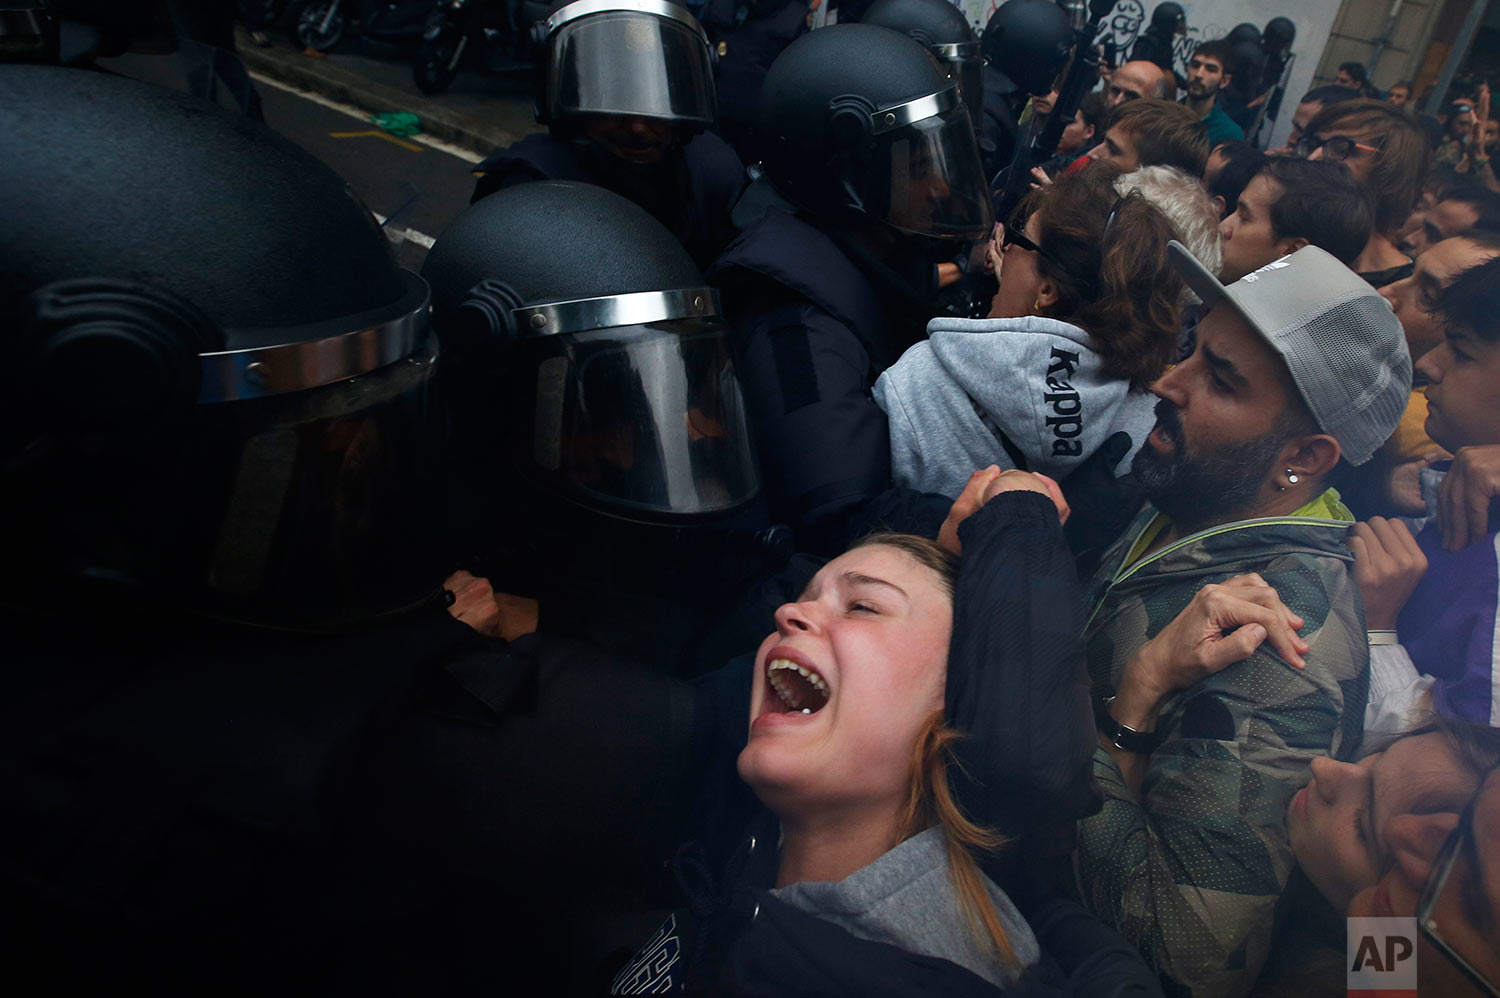 A girl grimaces as Spanish National Police pushes away Pro-referendum supporters outside the Ramon Llull school assigned to be a polling station by the Catalan government in Barcelona, Spain, early Sunday, 1 Oct. 2017. (AP Photo/Emilio Morenatti)